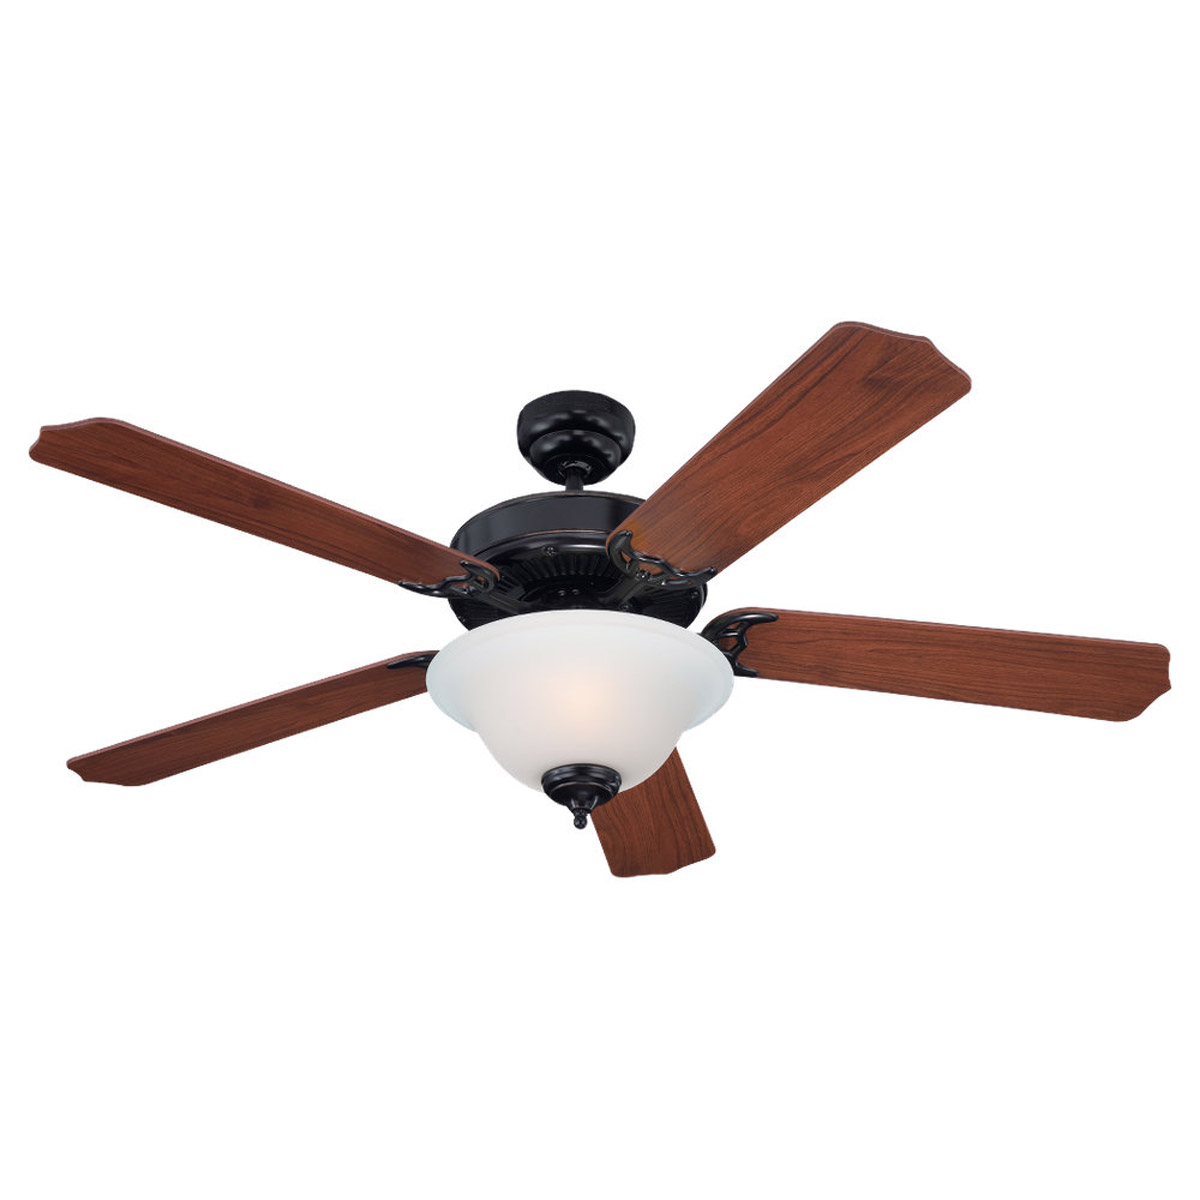 Sea Gull Lighting Quality Max Plus 2 Light Fluorescent Ceiling Fan in Vintage Brown 15030BLE-862 photo